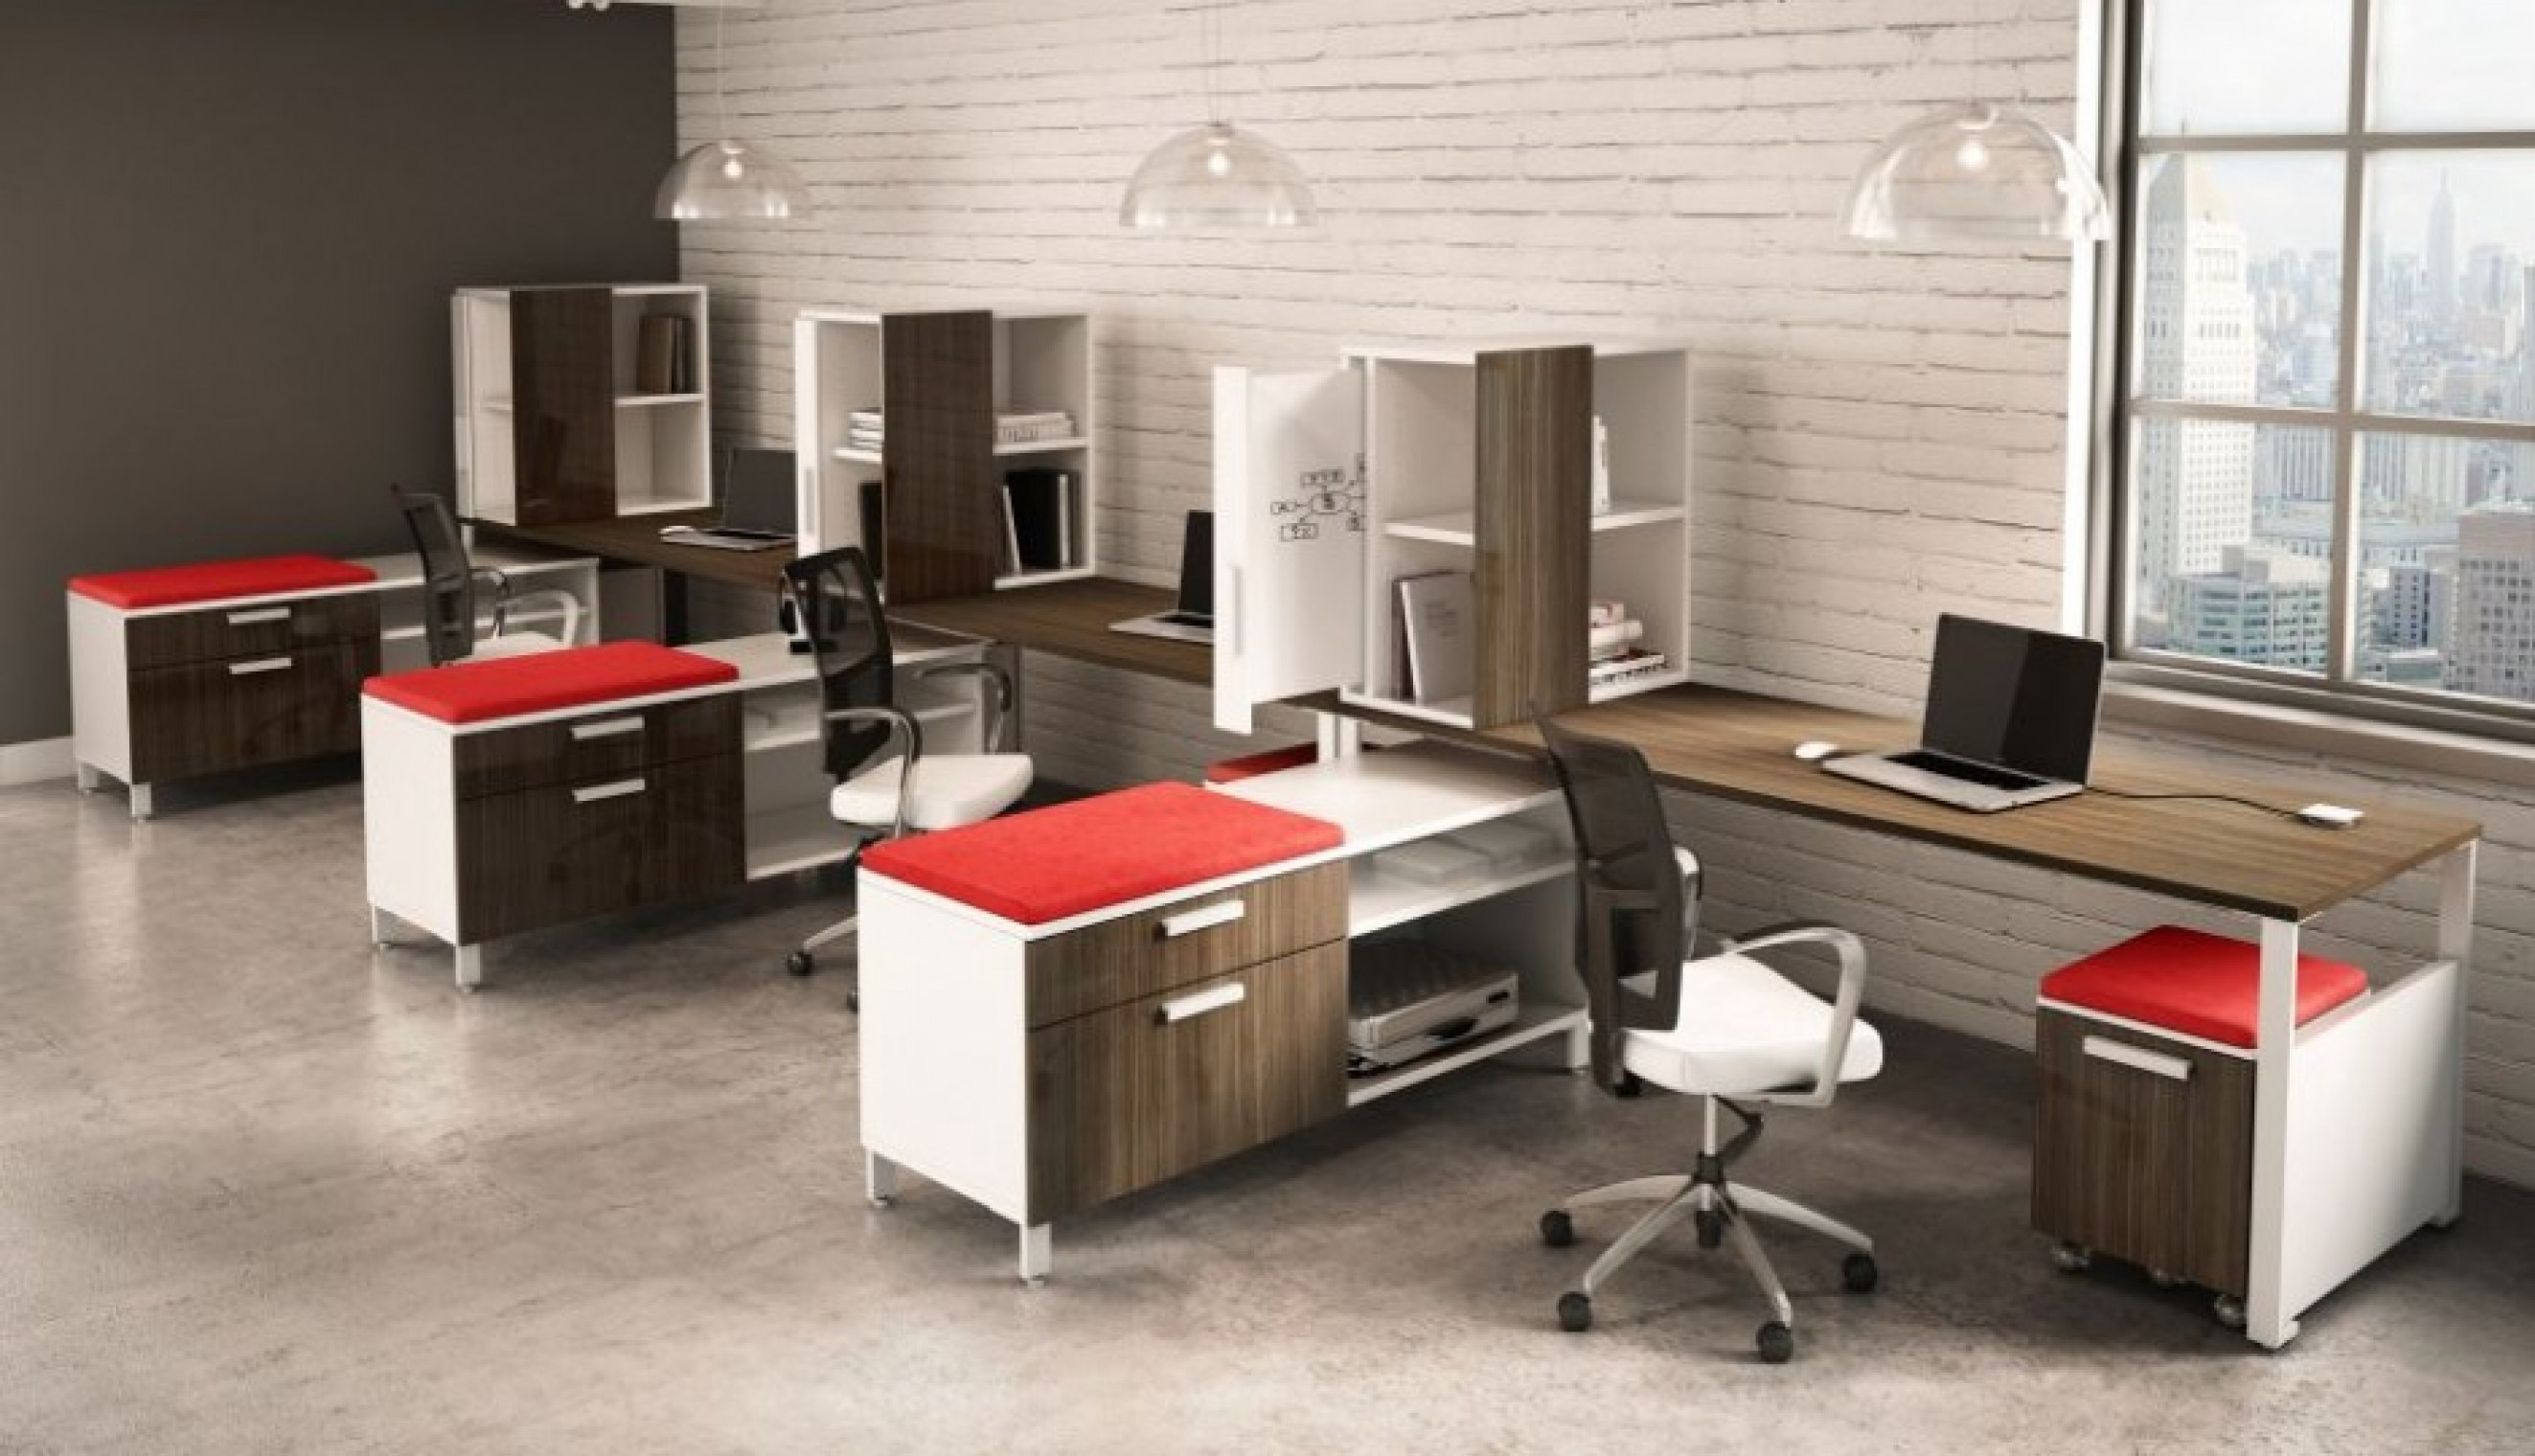 Domestic Office Fixtures Suggestions For The Best Buying By Oc Furniture Medium